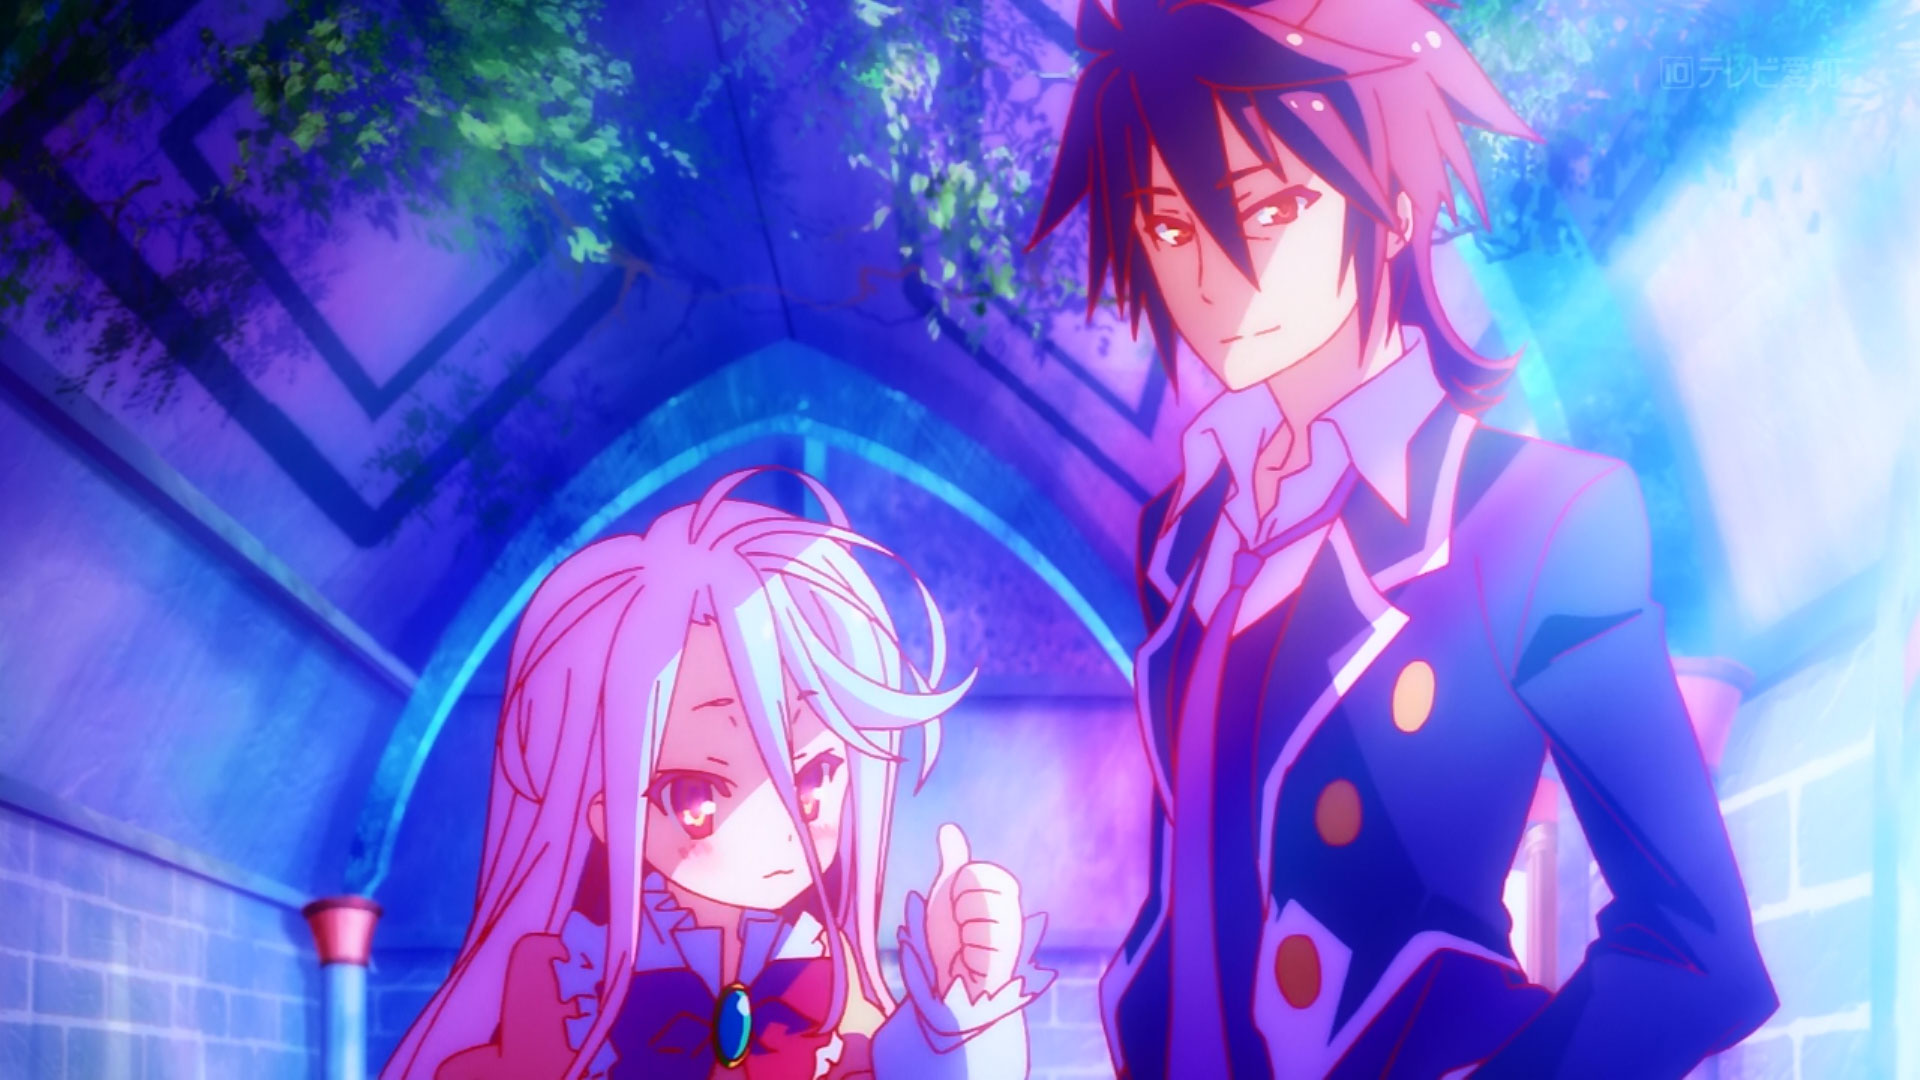 No Game No Life Wallpaper 21 Wallpapers Adorable Wallpapers